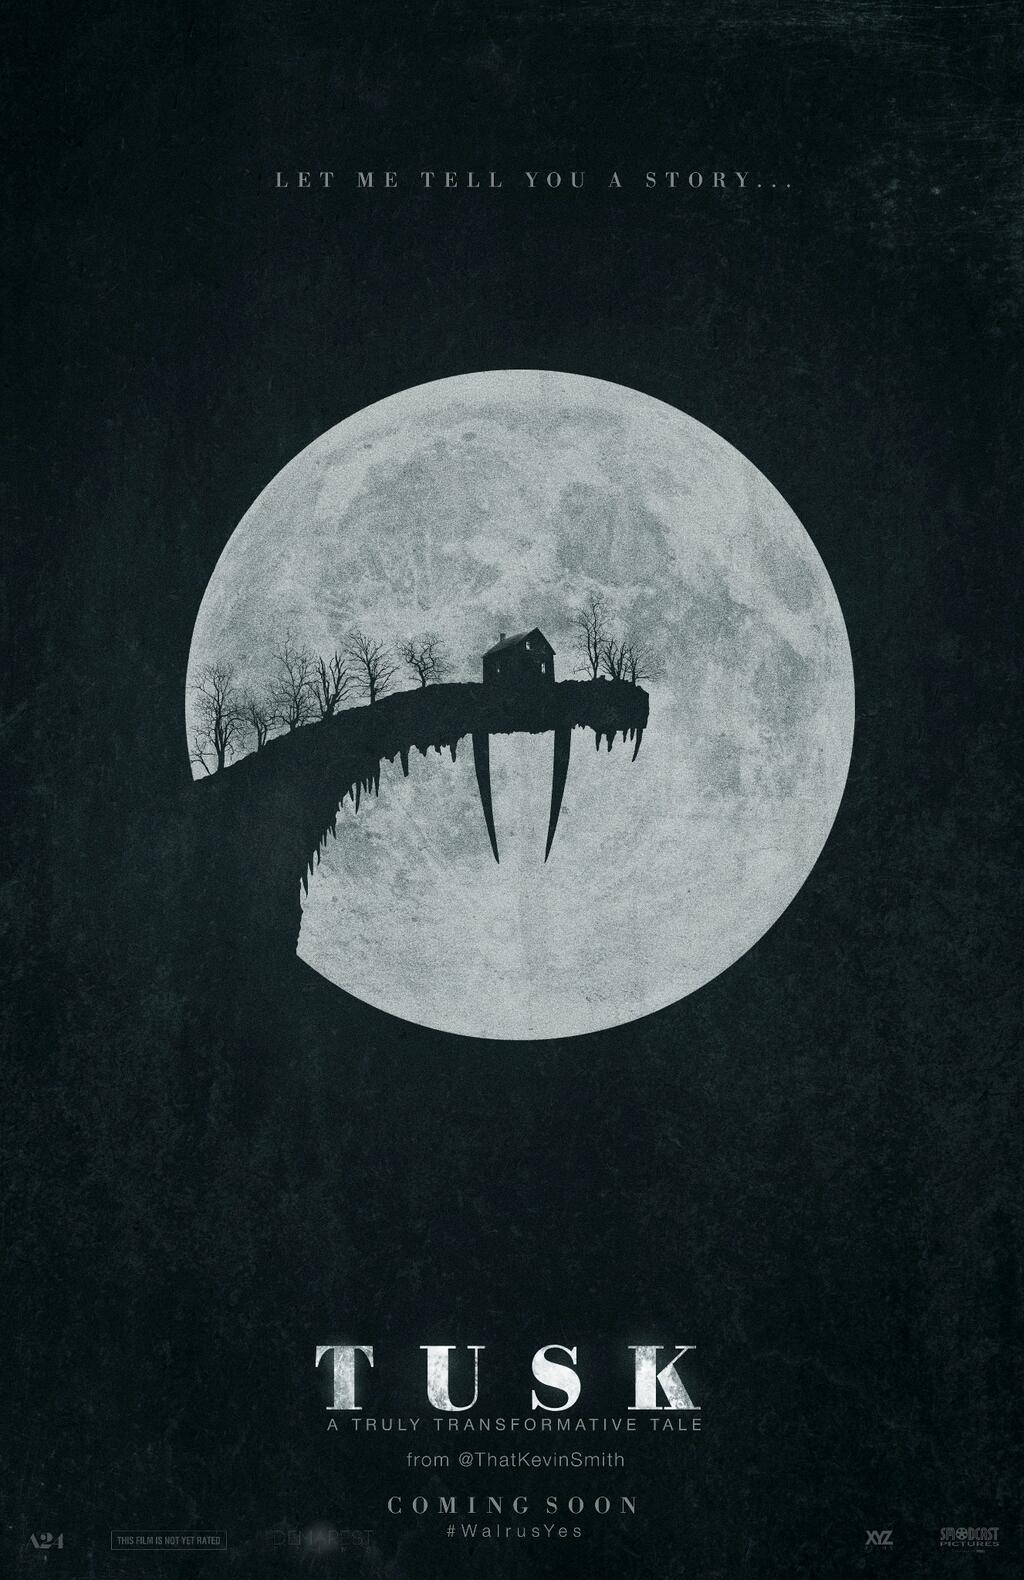 http://bloody-disgusting.com/videos/3305054/kevin-smiths-tusk-trailer-sdcc/